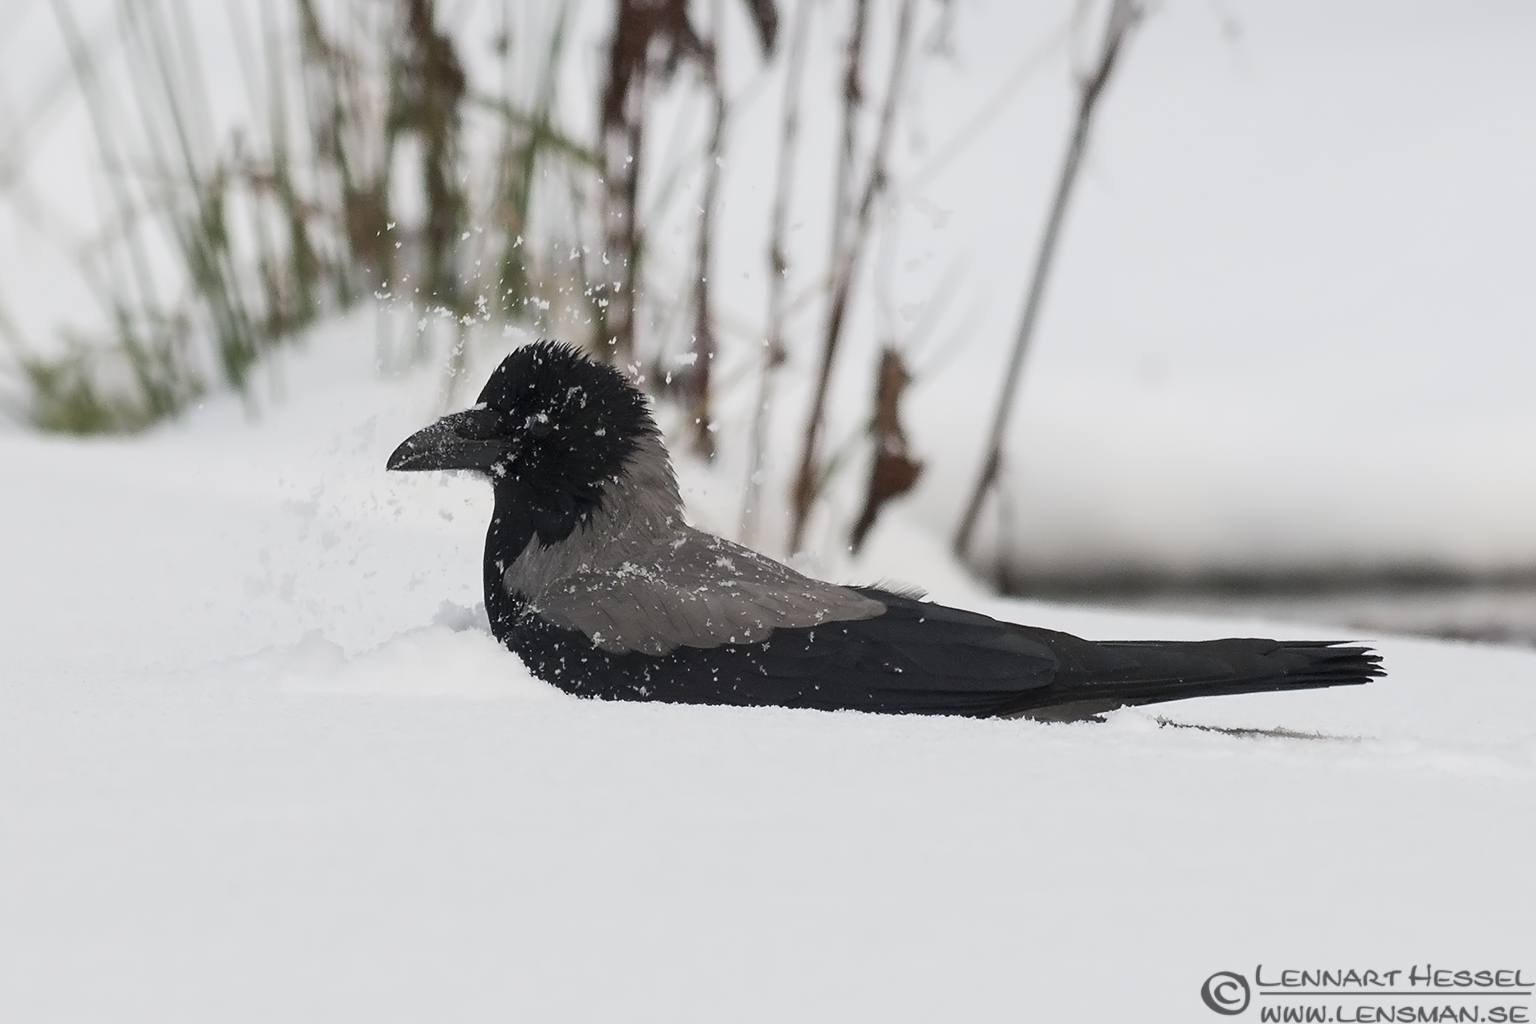 Hooded Crow washing photo from Slottskogen on Christmas Eve